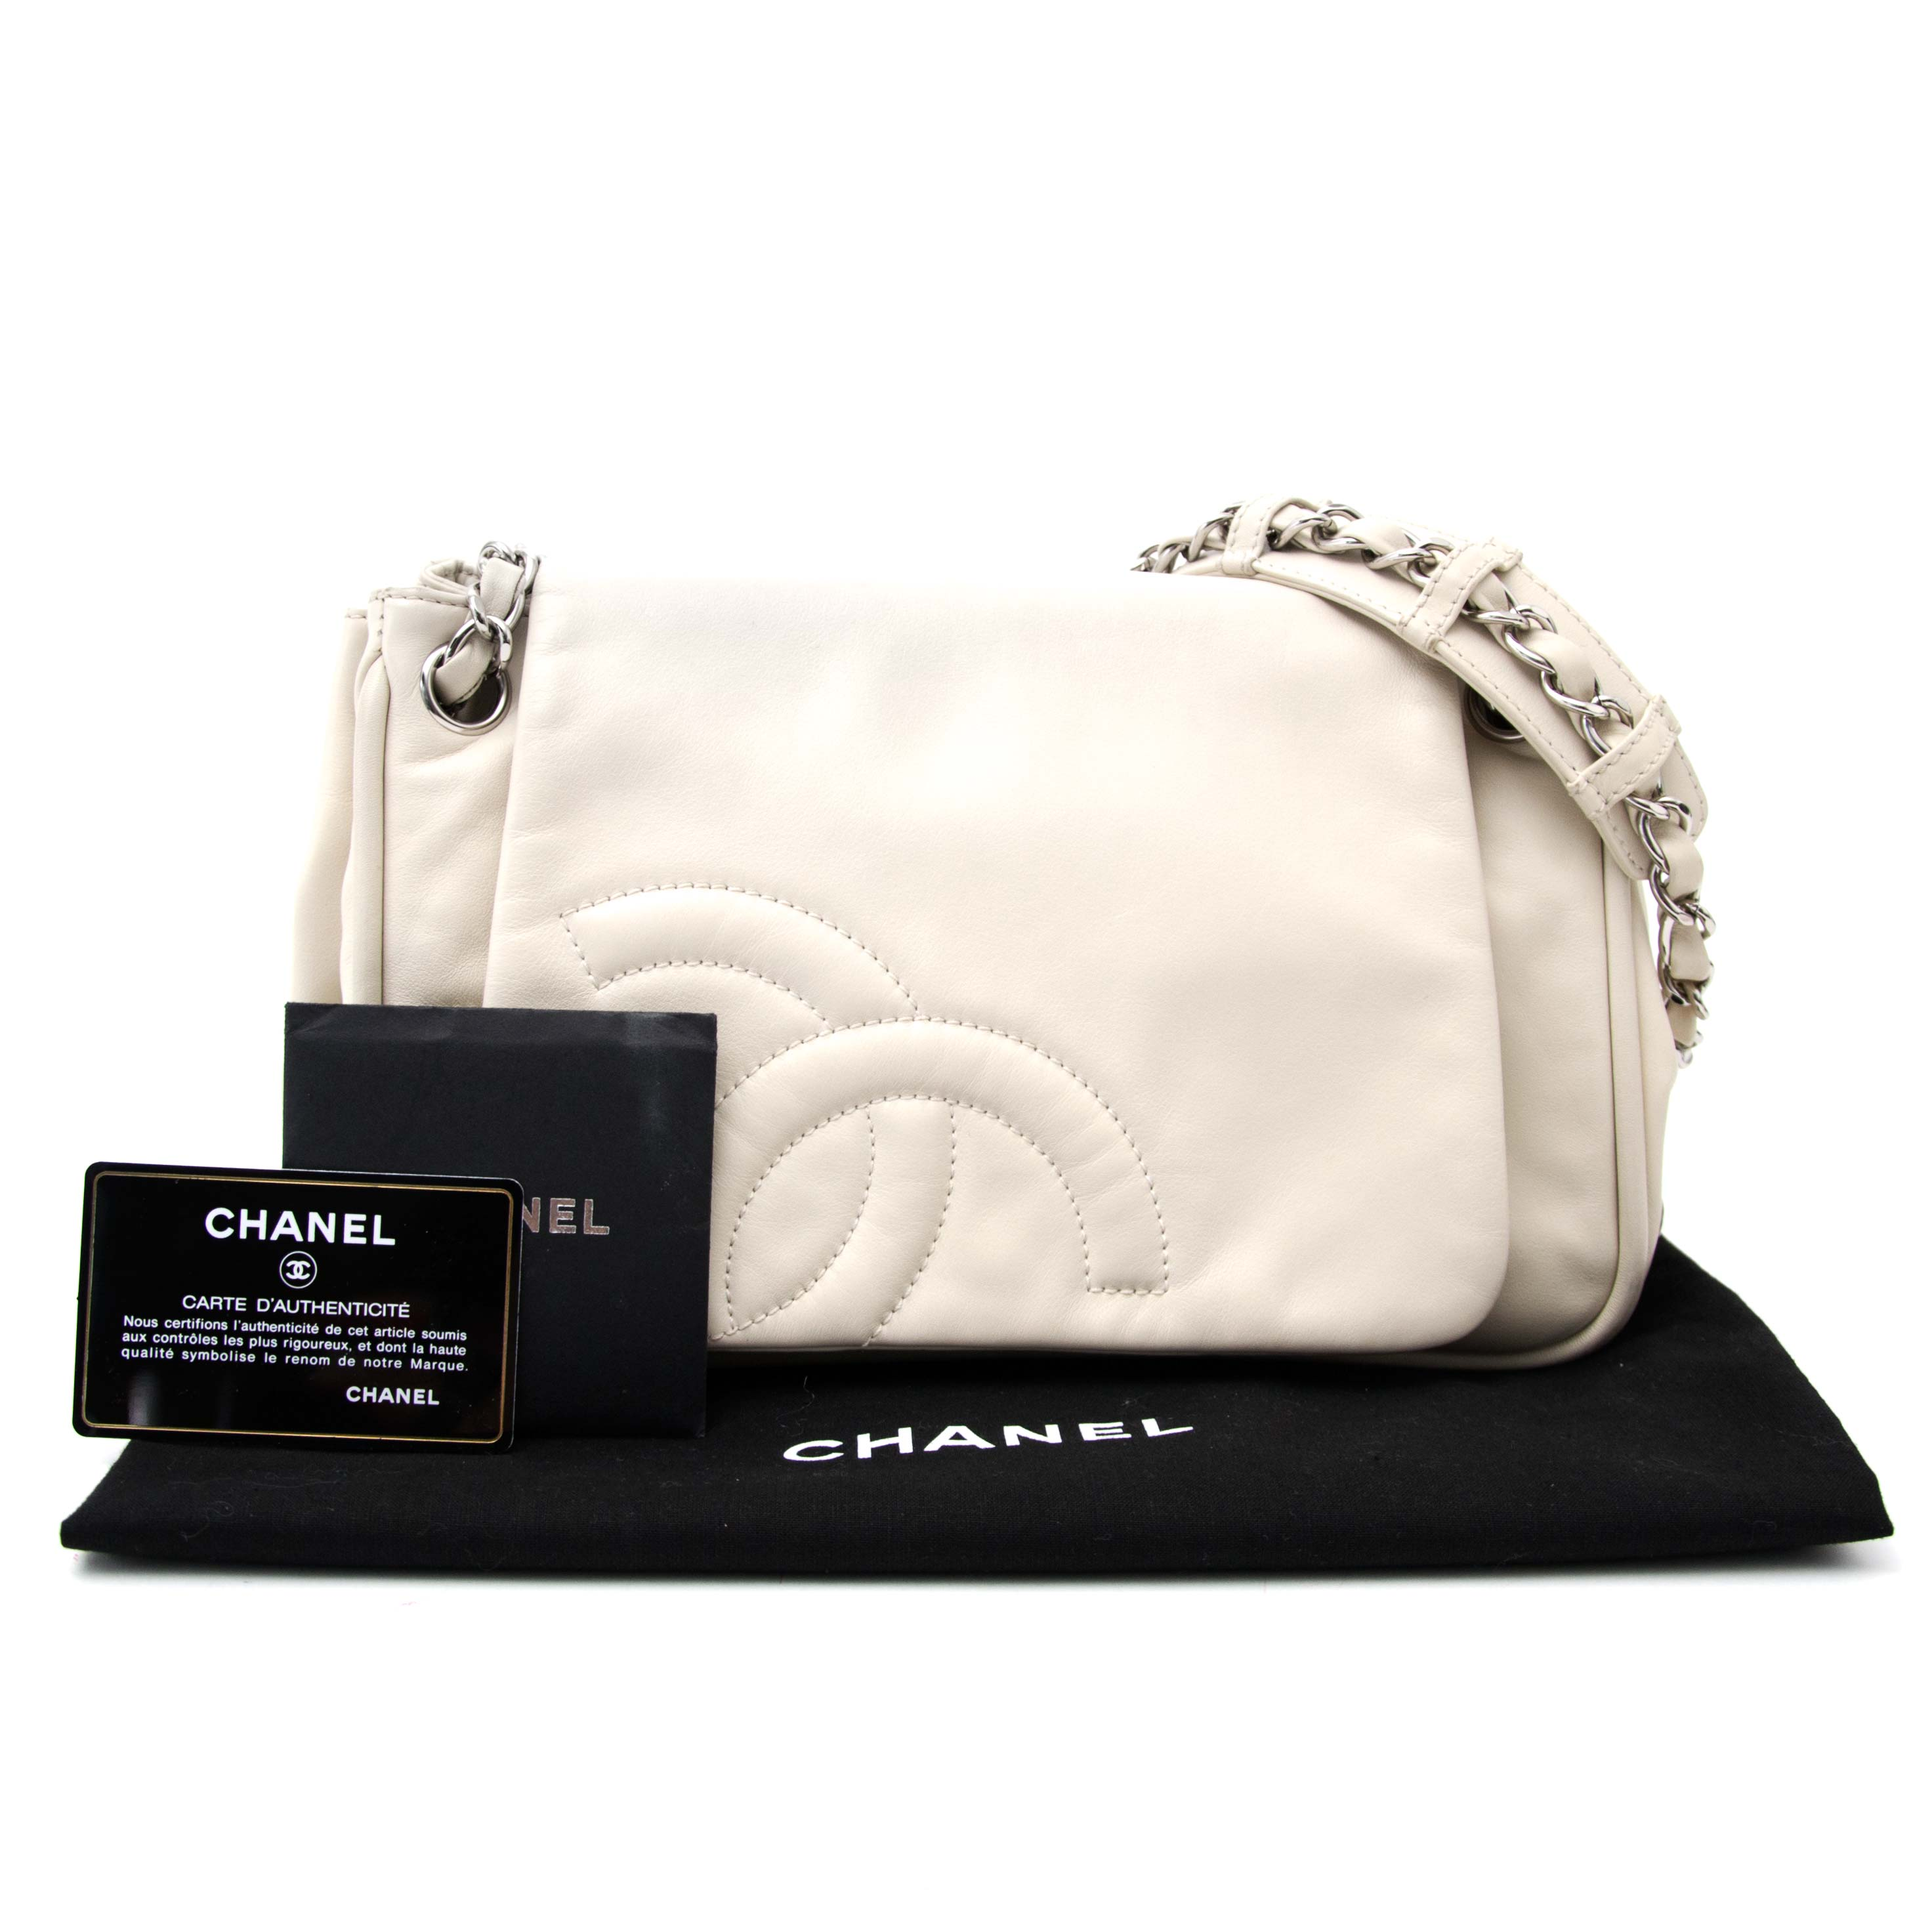 We buy and sell your secondhand luxury handbags and accessories Chanel Accordion Cream Flap Bag